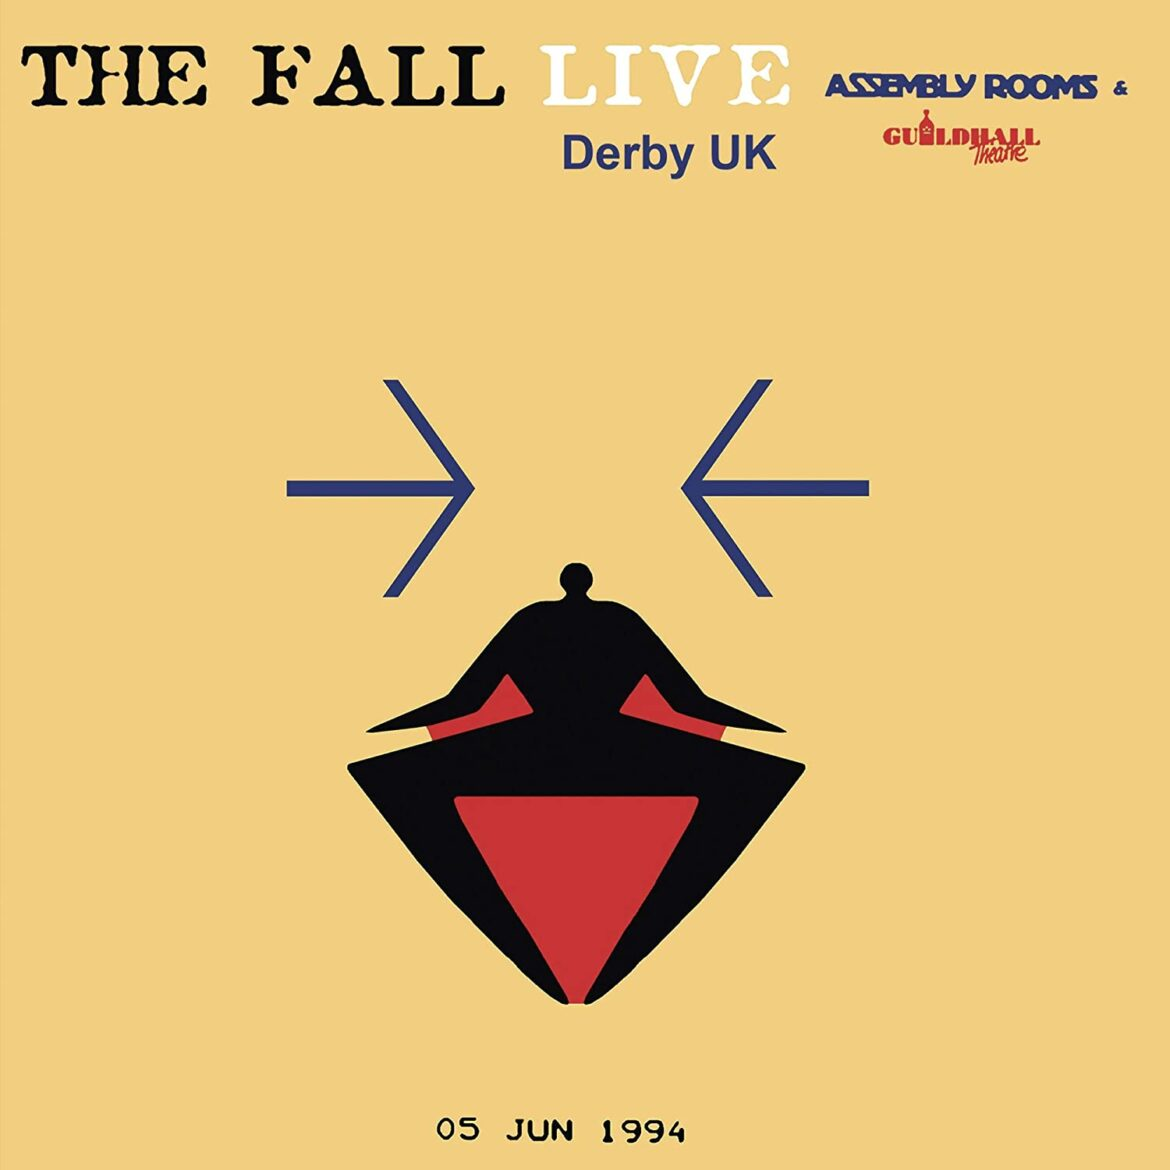 THE FALL – ASSEMBLY ROOMS, DERBY UK 5TH JUNE 1994